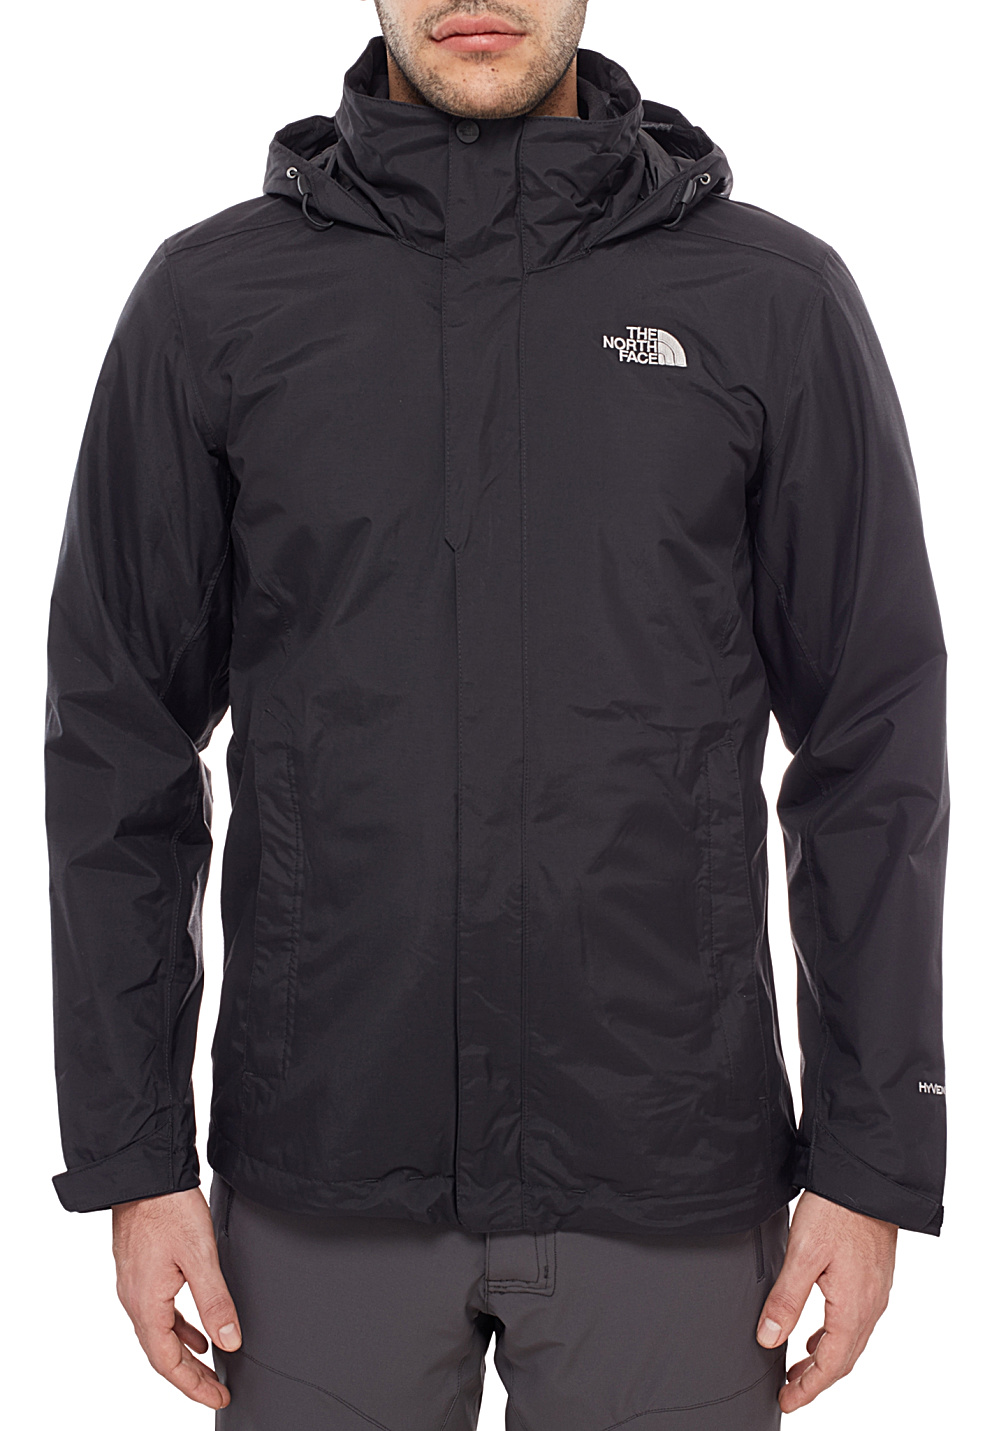 00440c14b243 THE NORTH FACE Evolution II Triclimate - Jacket for Men - Black ...